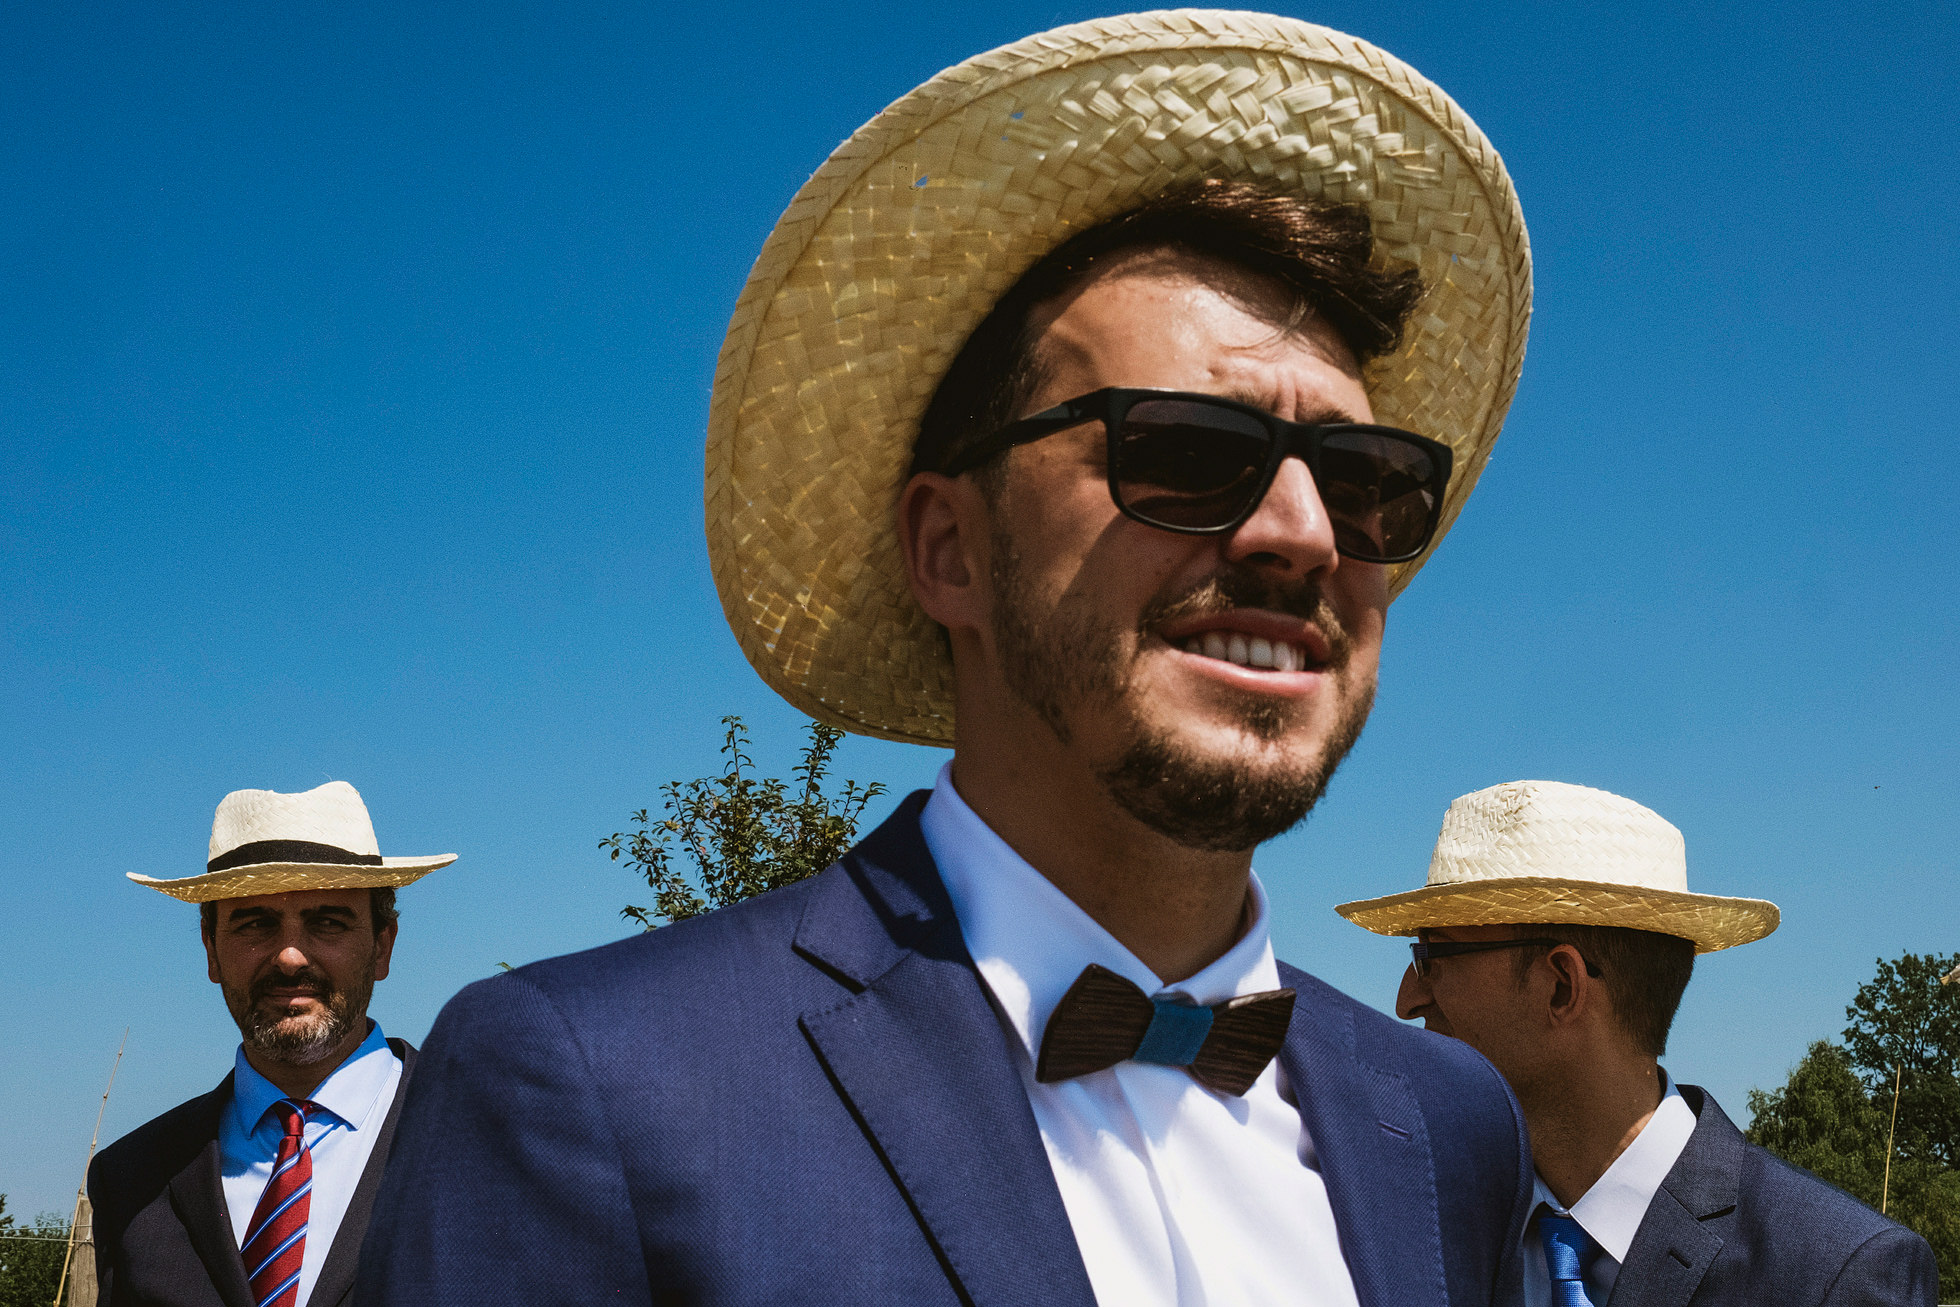 Three men in straw hats at Polish wedding